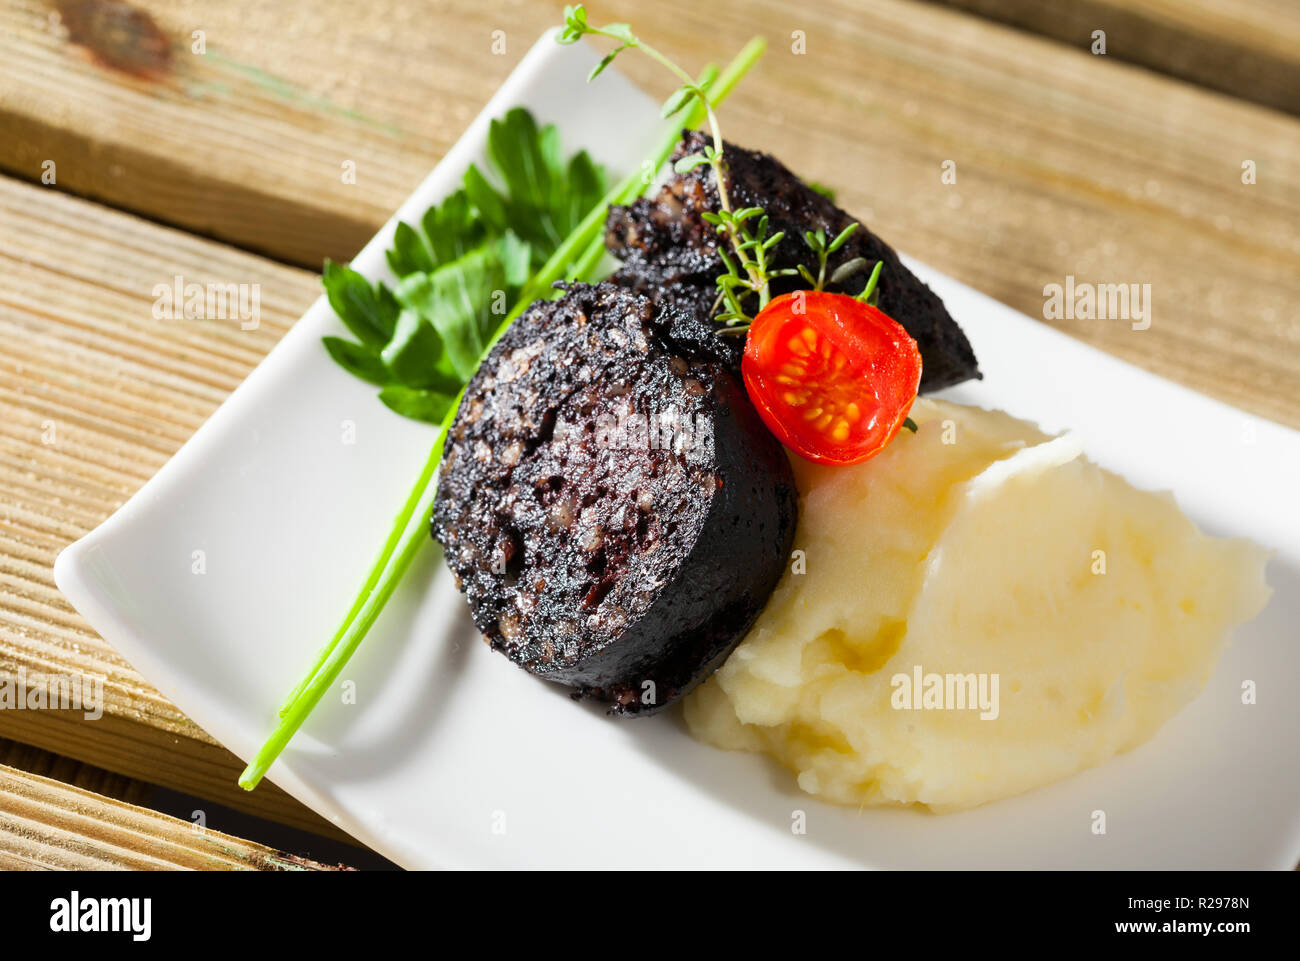 Fried morcilla (blood sausage with rice) served on white plate with pureed potatoes, tomatoes and aromatic herbs - Stock Image